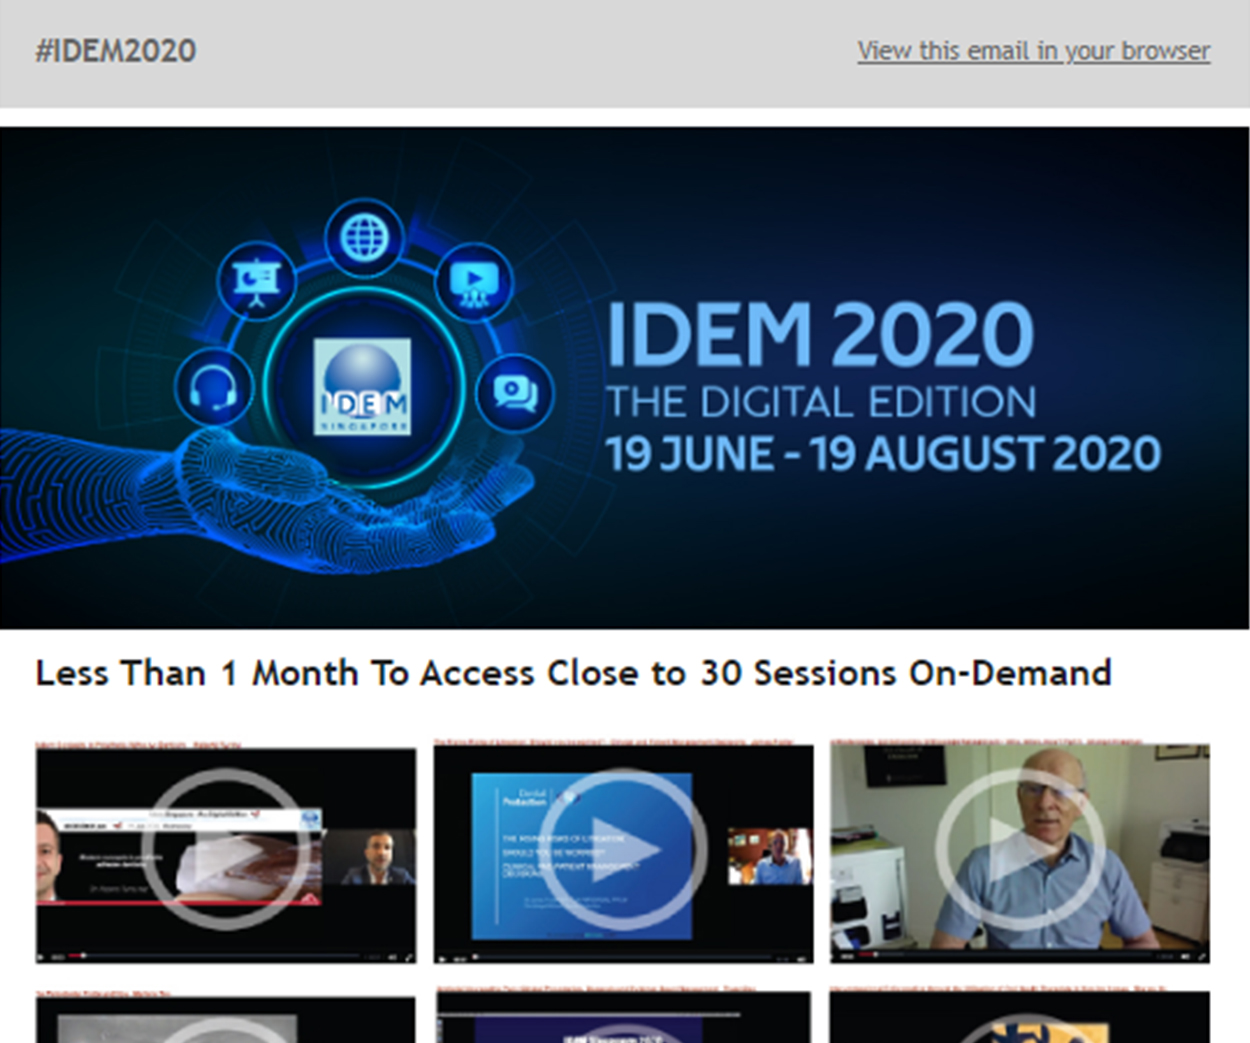 IDEM 2020 digital 6 - News